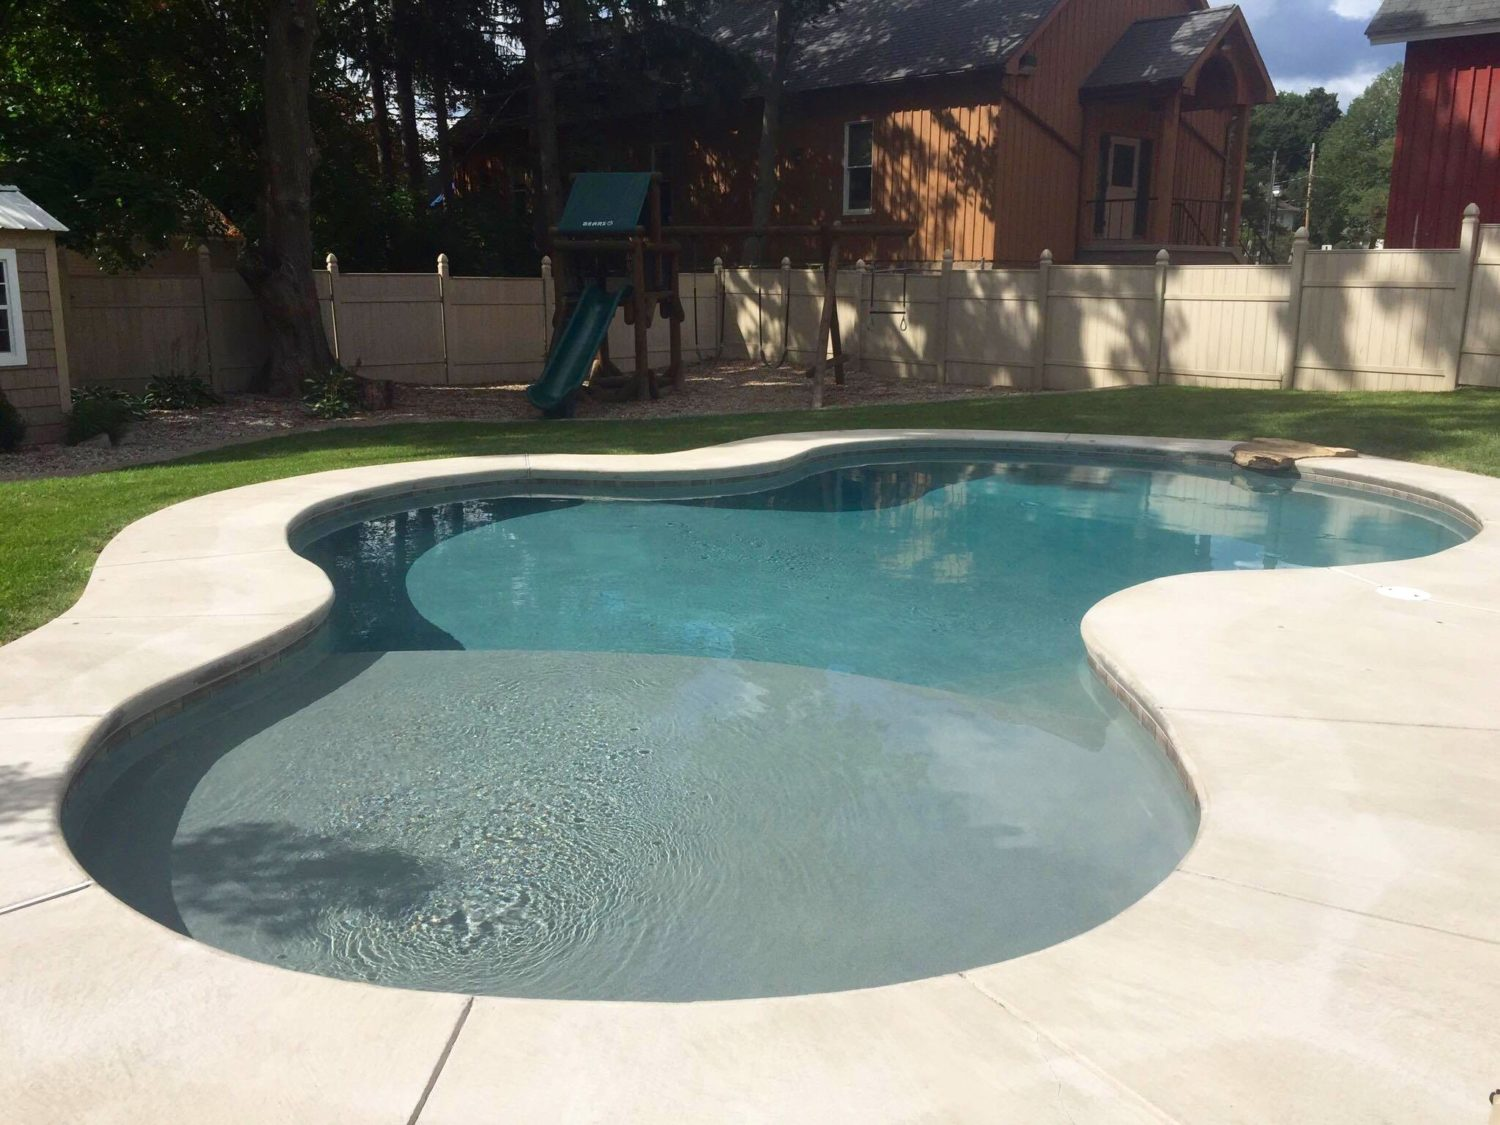 inground pool, Sun Ledge, Tanning ledge, gunite